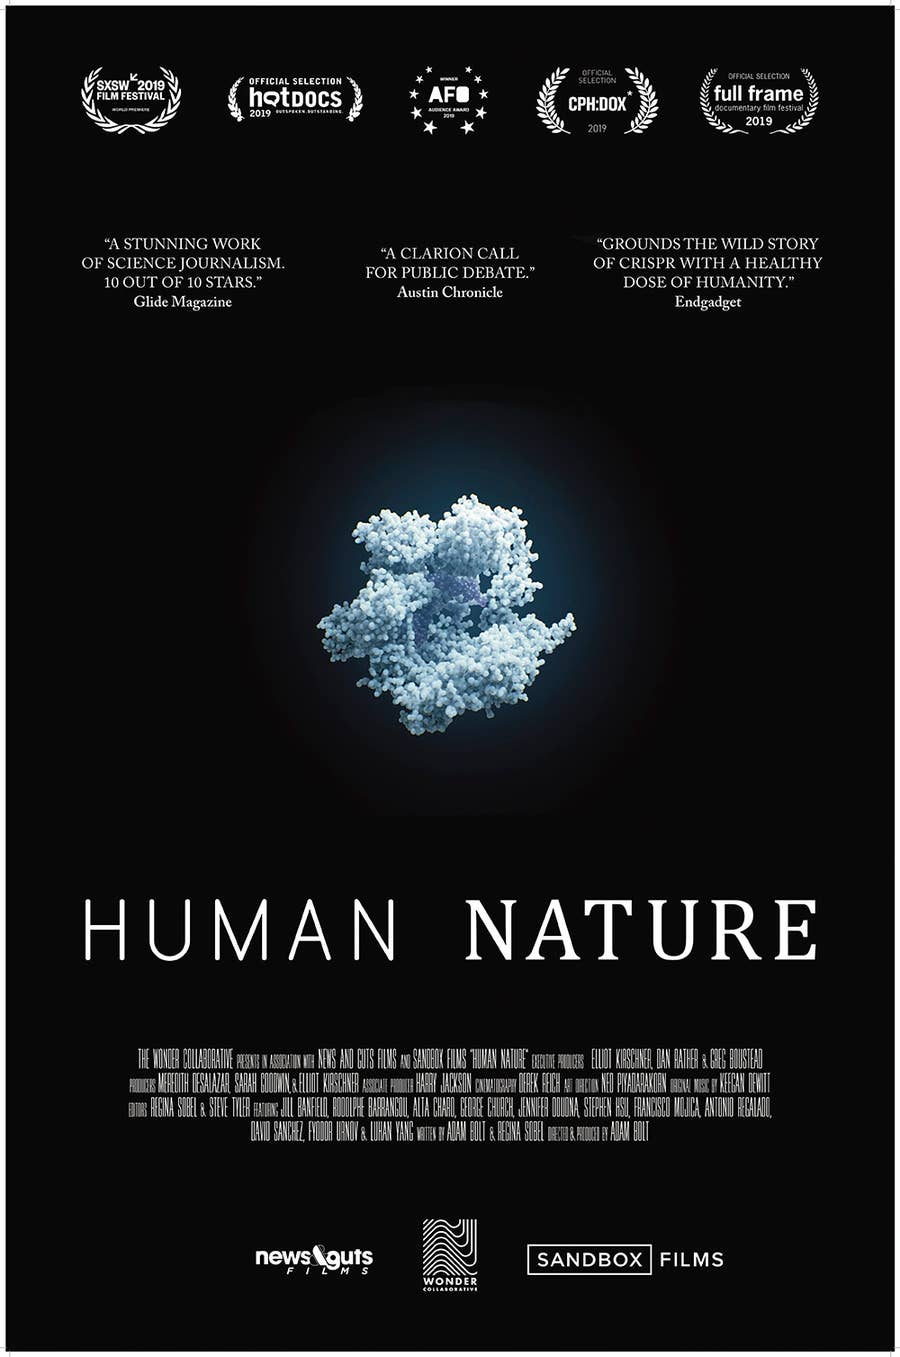 Best Movies and TV Shows Featuring CRISPR and Genetic Engineering